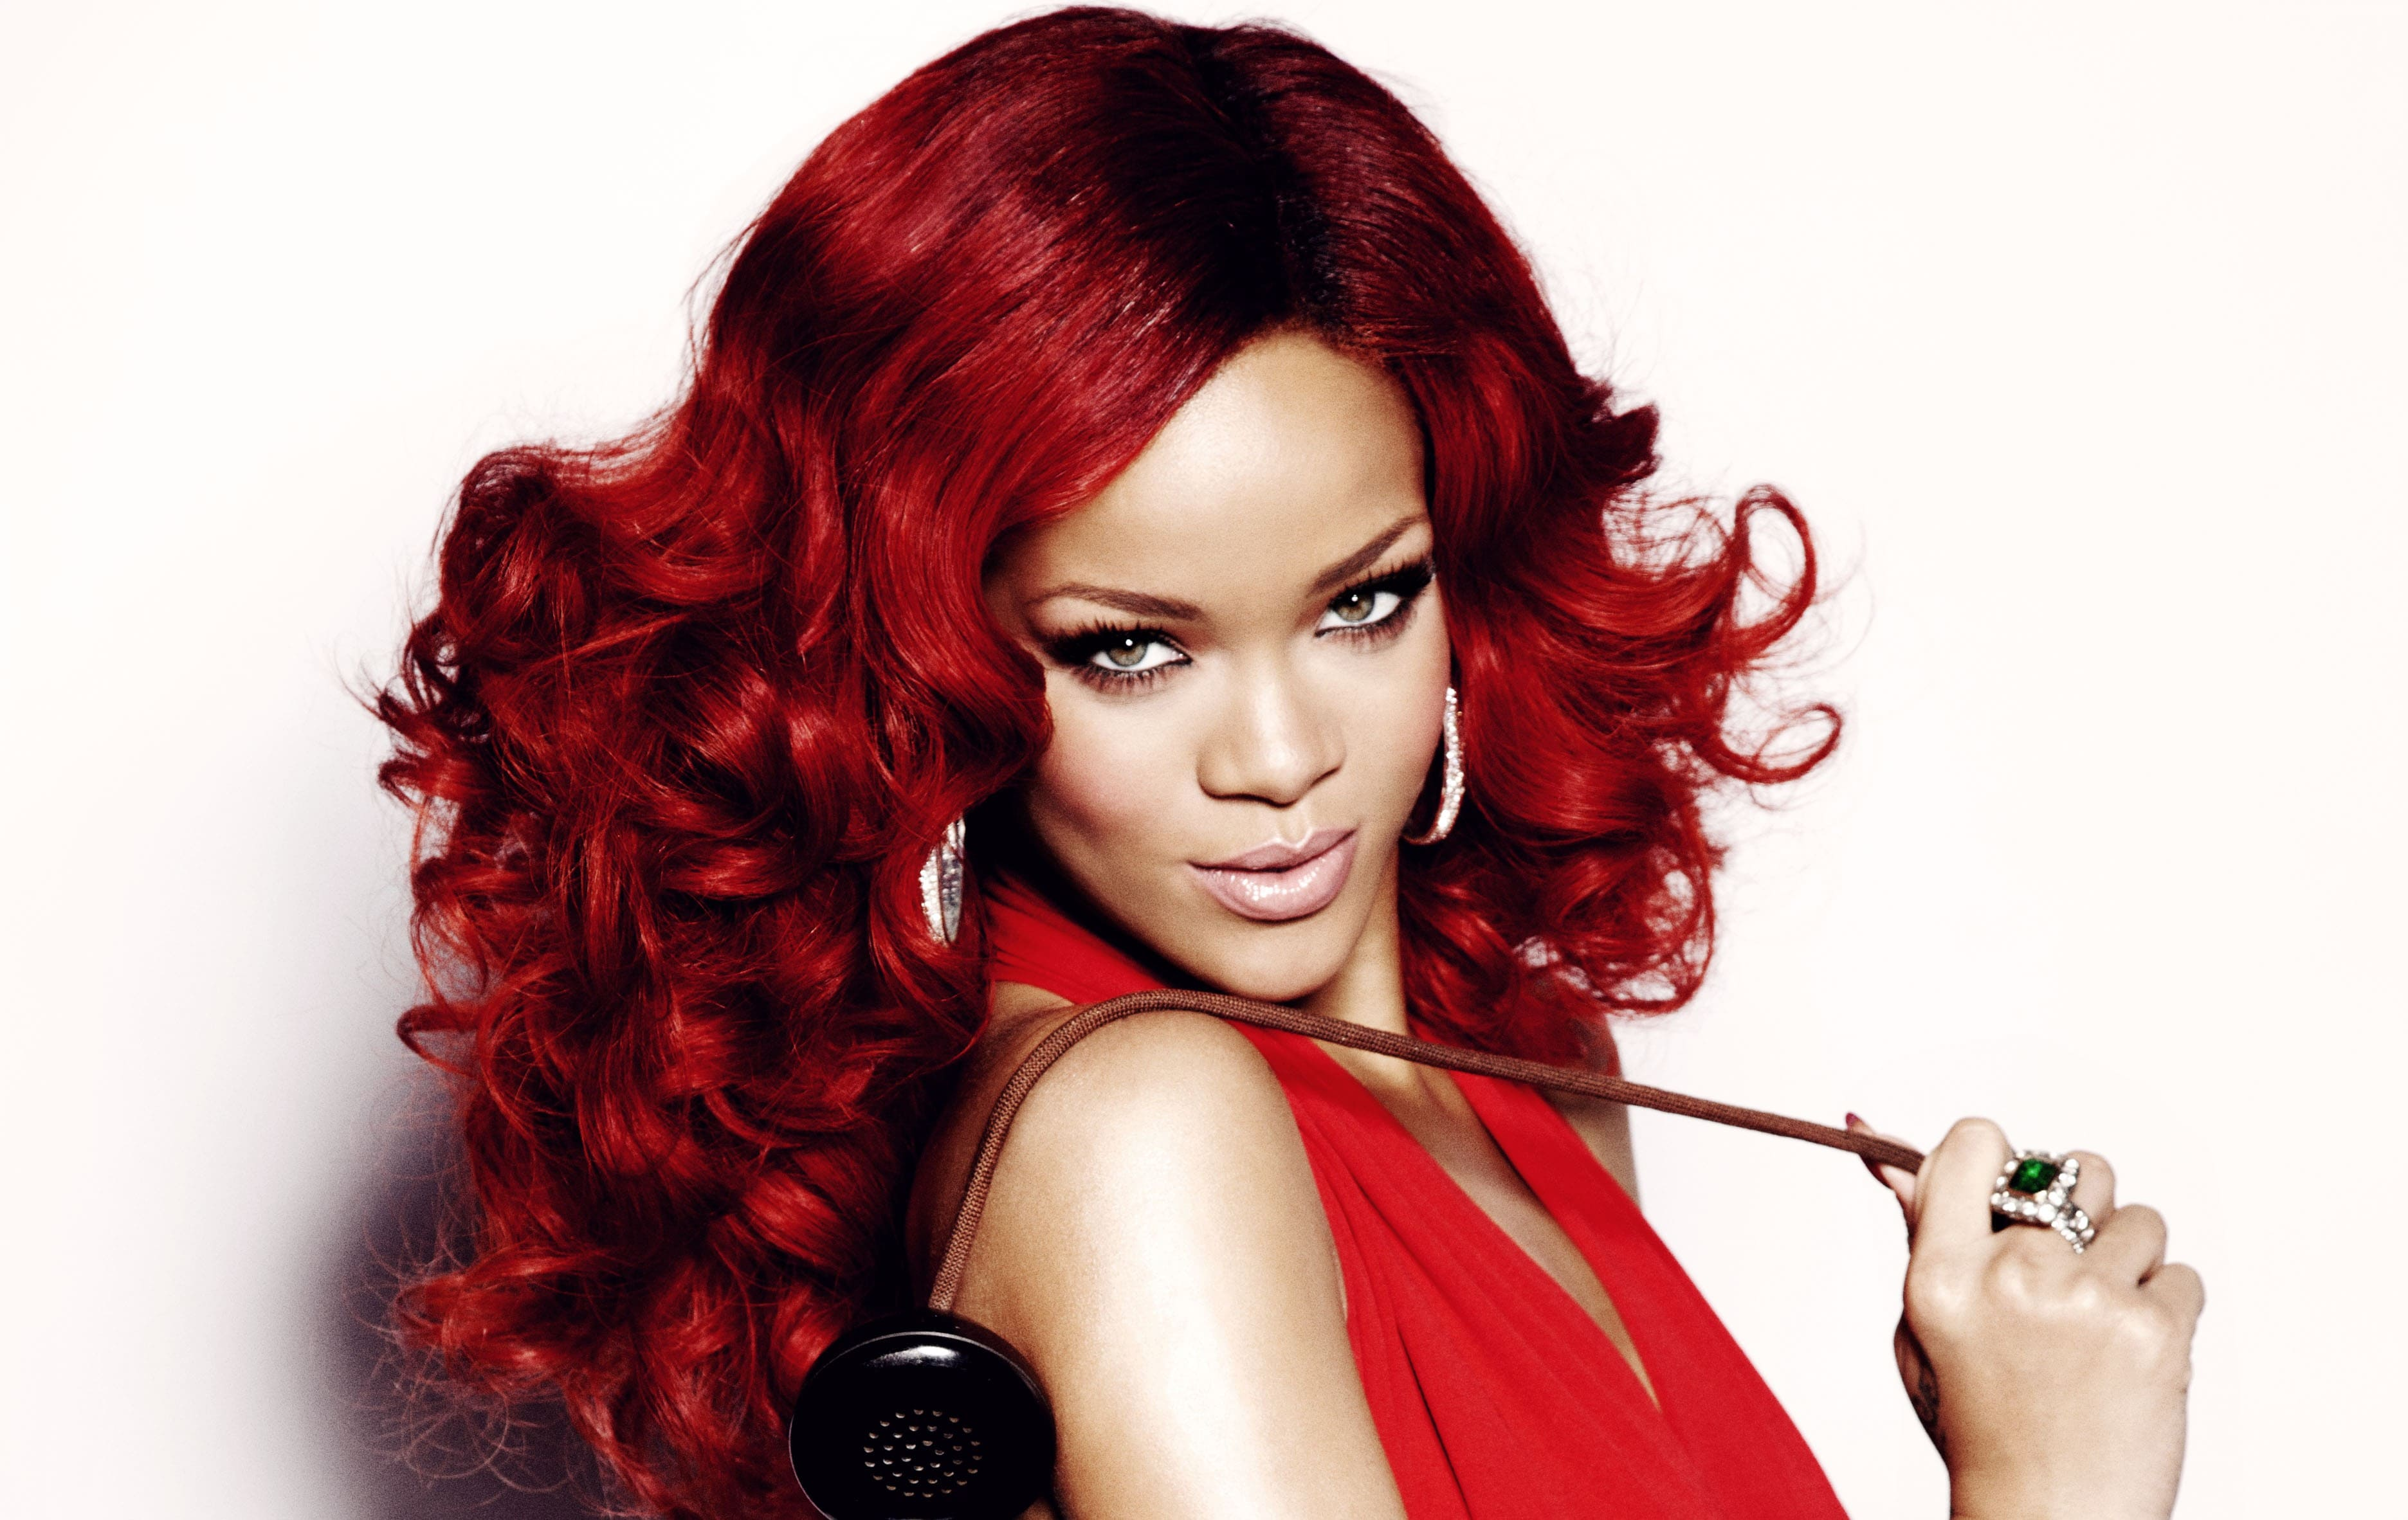 Rihanna Widescreen for desktop